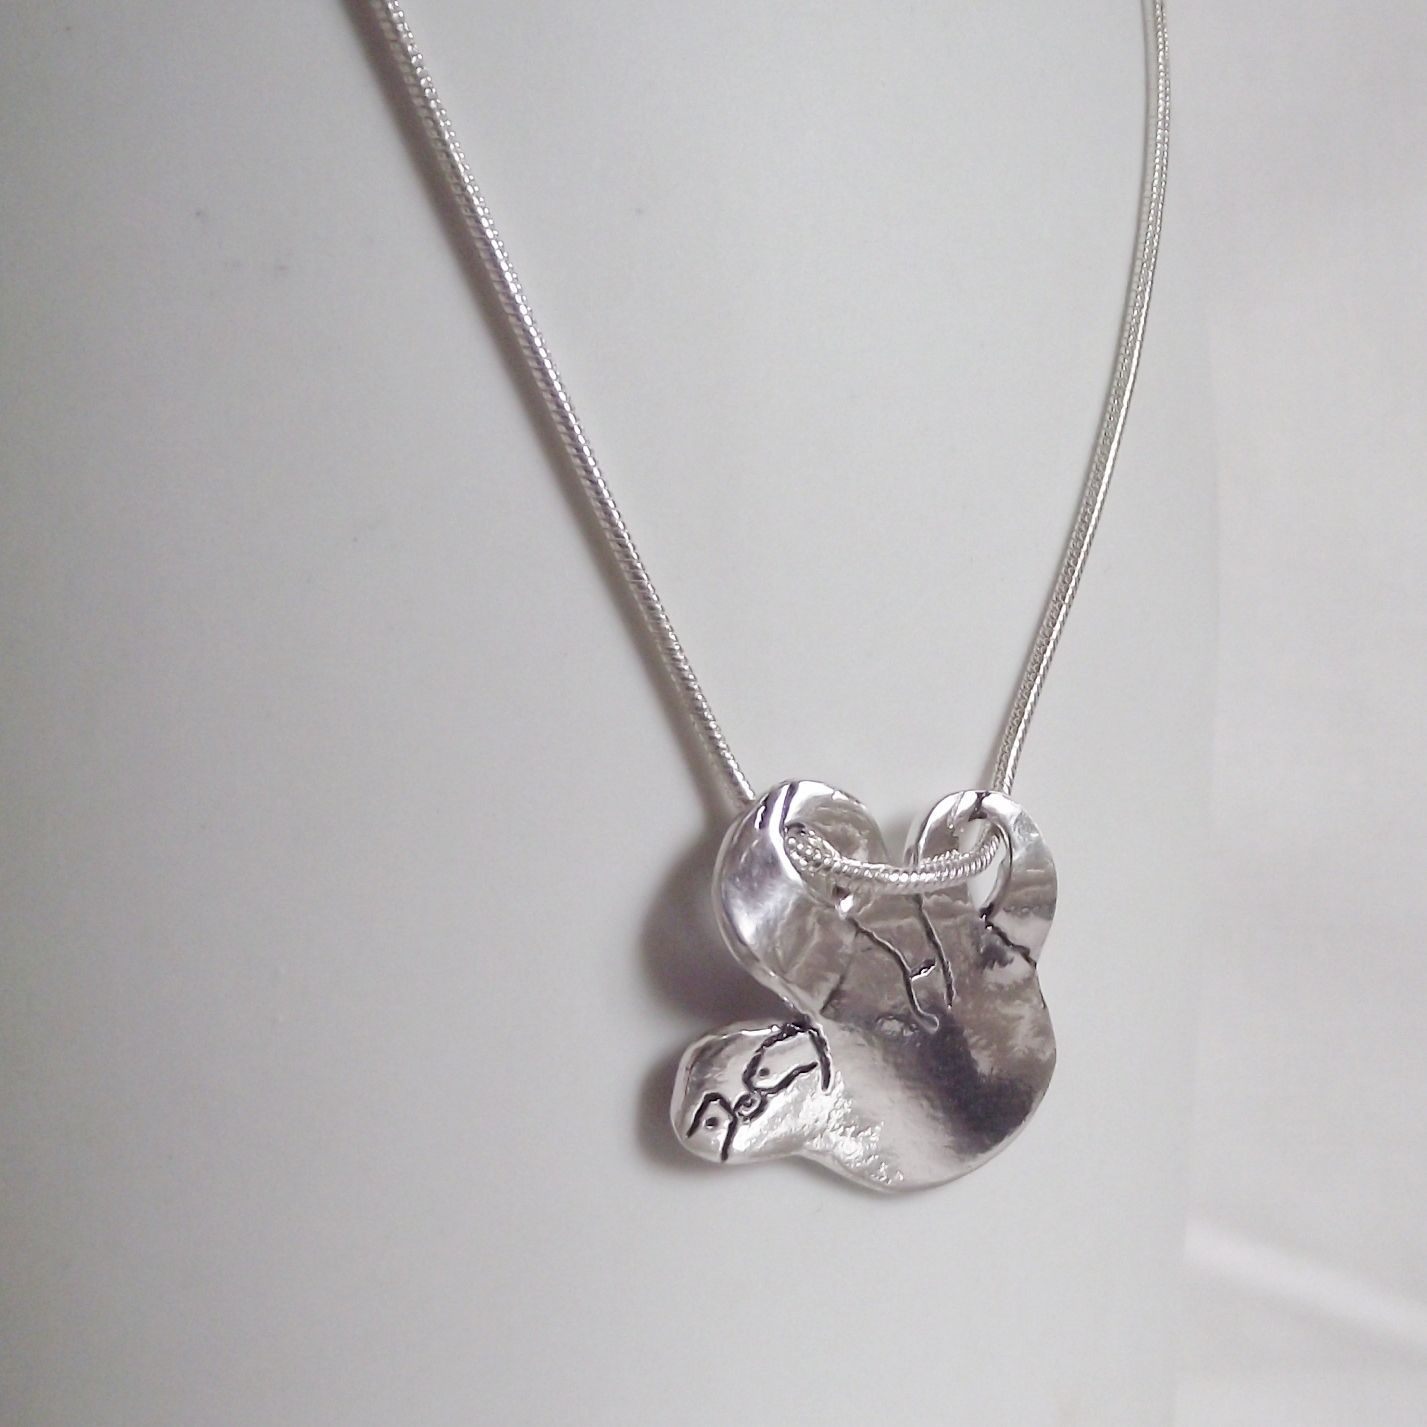 solid silver sloth ebay necklace unique handmade pendant hanging jewellery s itm stunning